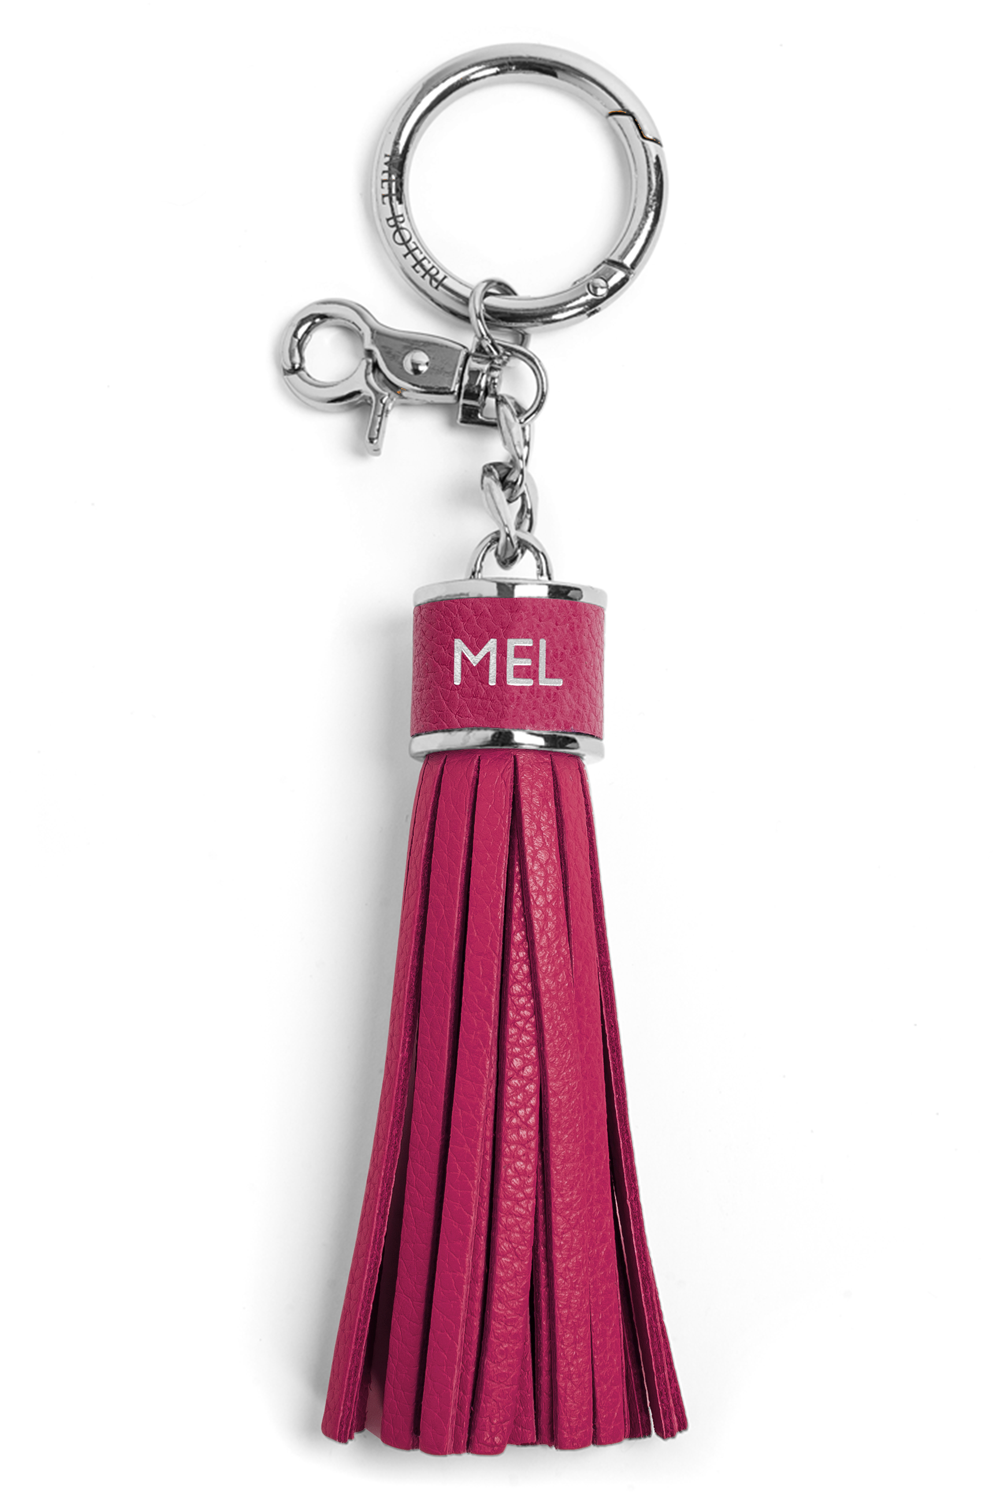 The Mel Boteri Pebbled-Leather Tassel Charm | Magenta Leather With Silver Hardware | Mel Boteri Gift Ideas